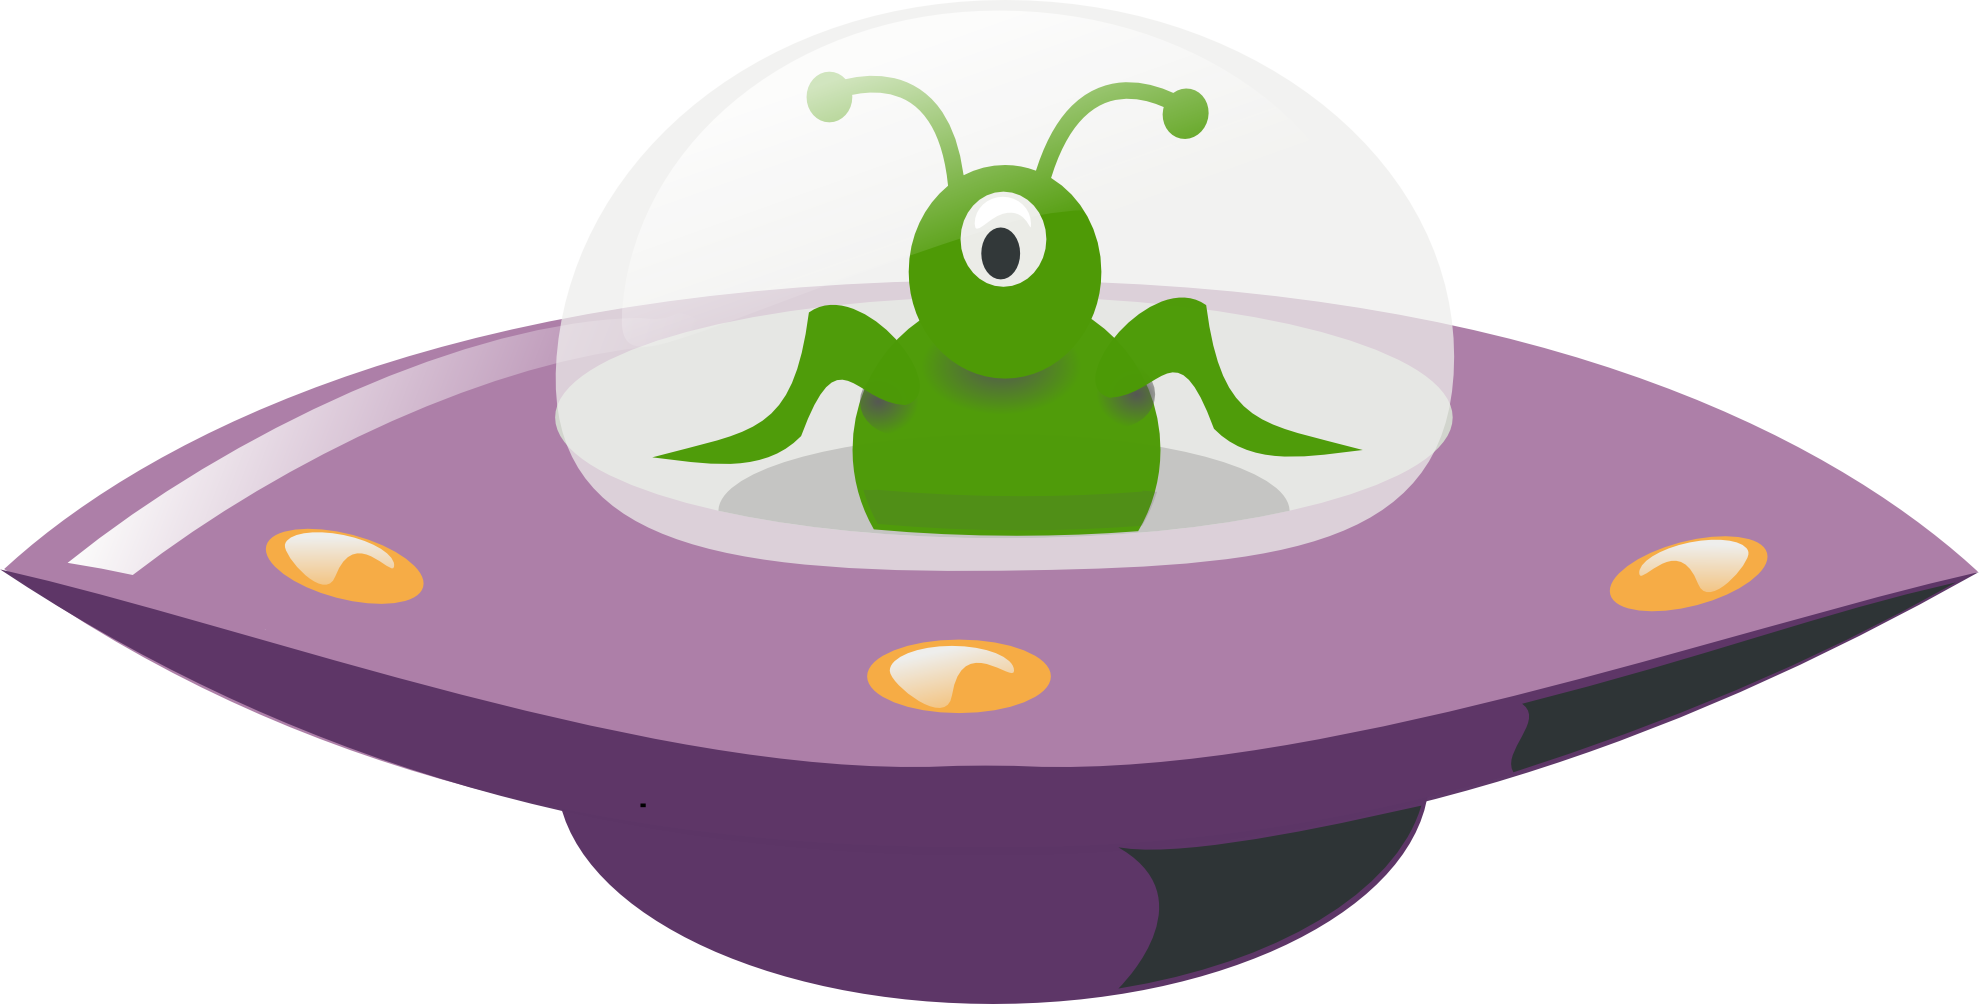 UFO clipart #6, Download drawings